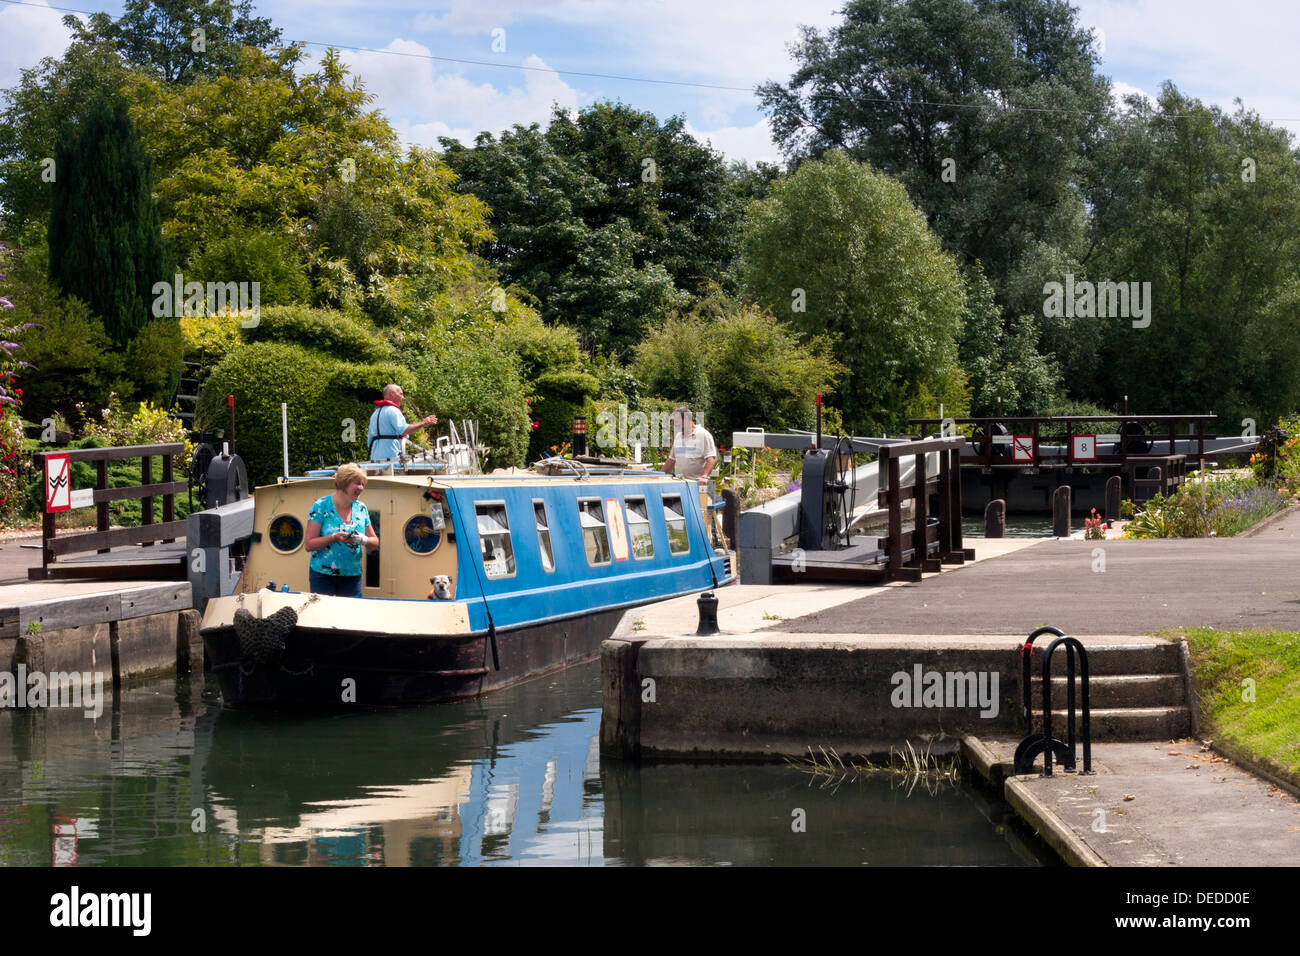 Narrowboat using the lock at Radcot on the River Thames in Oxfordshire - Stock Image